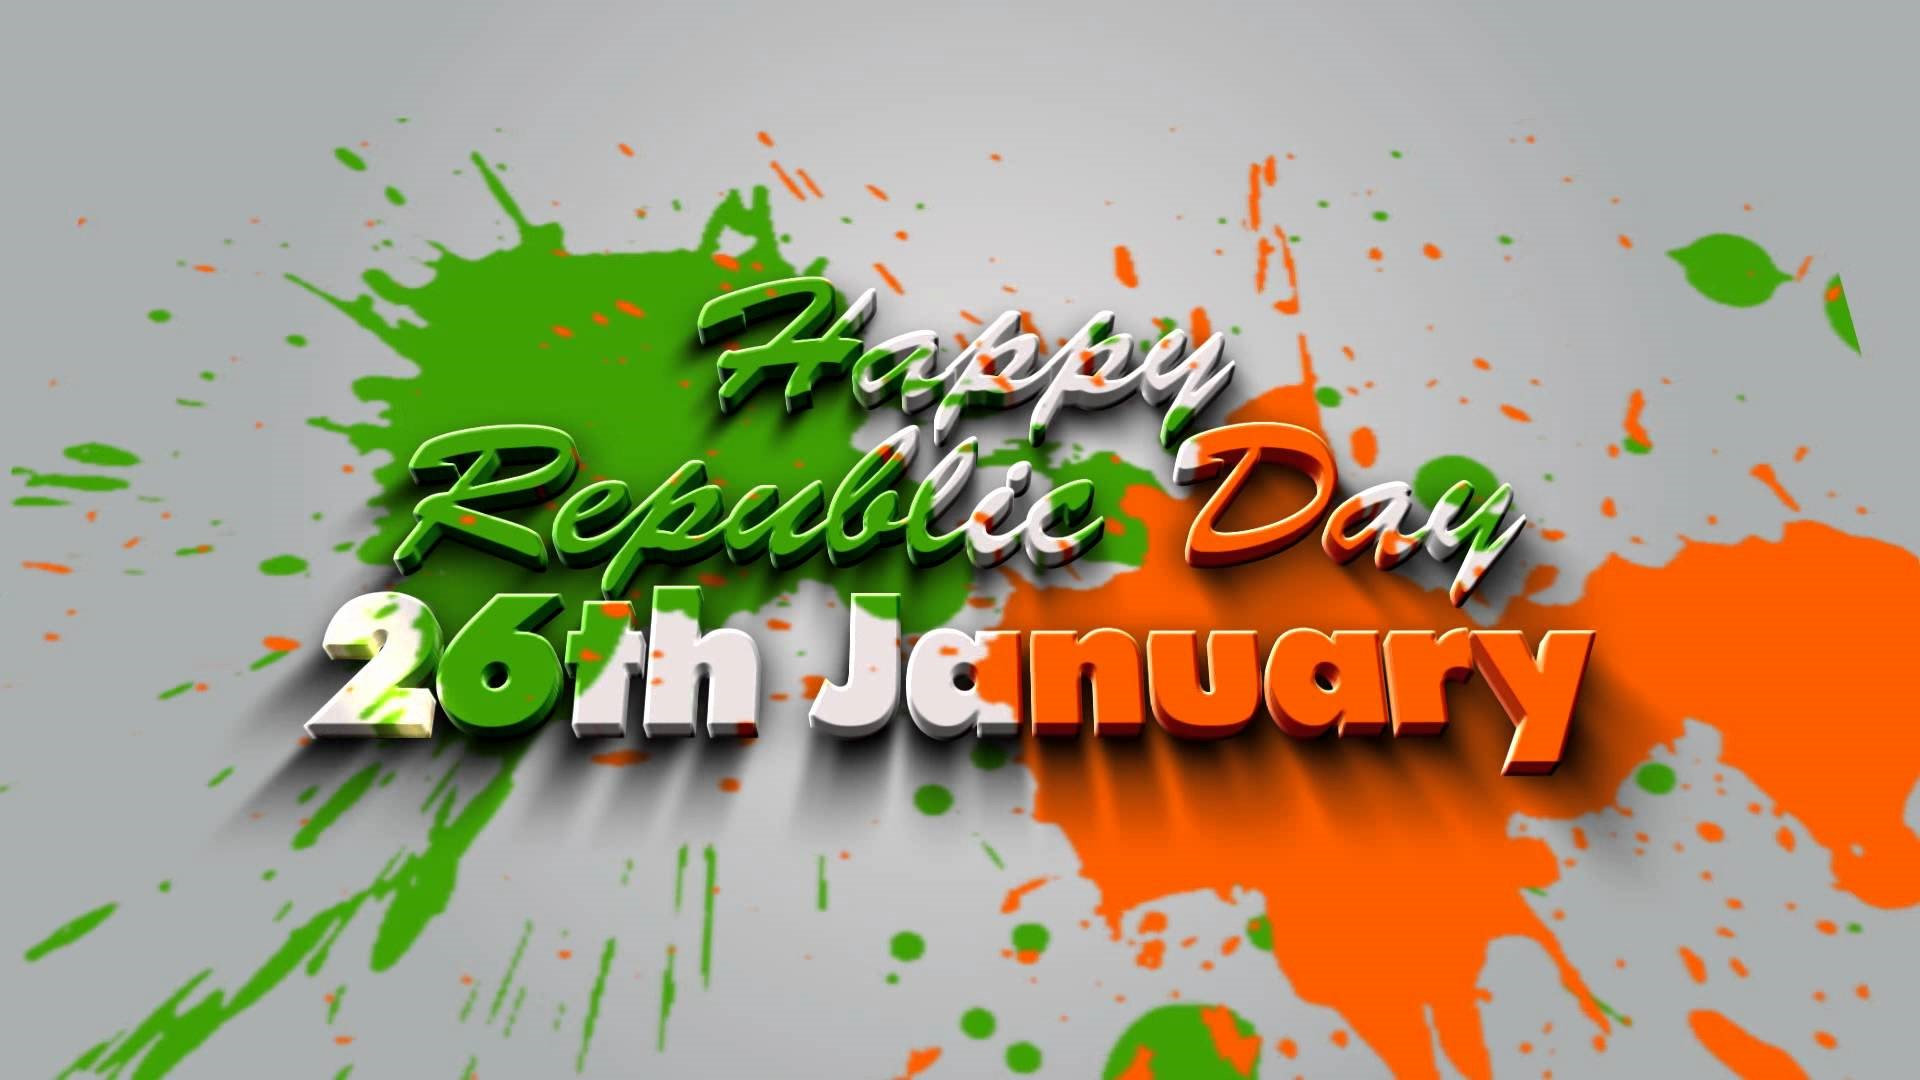 Wallpaper Republic Day 26 January Wide High Definition Wallpapers 1920x1080